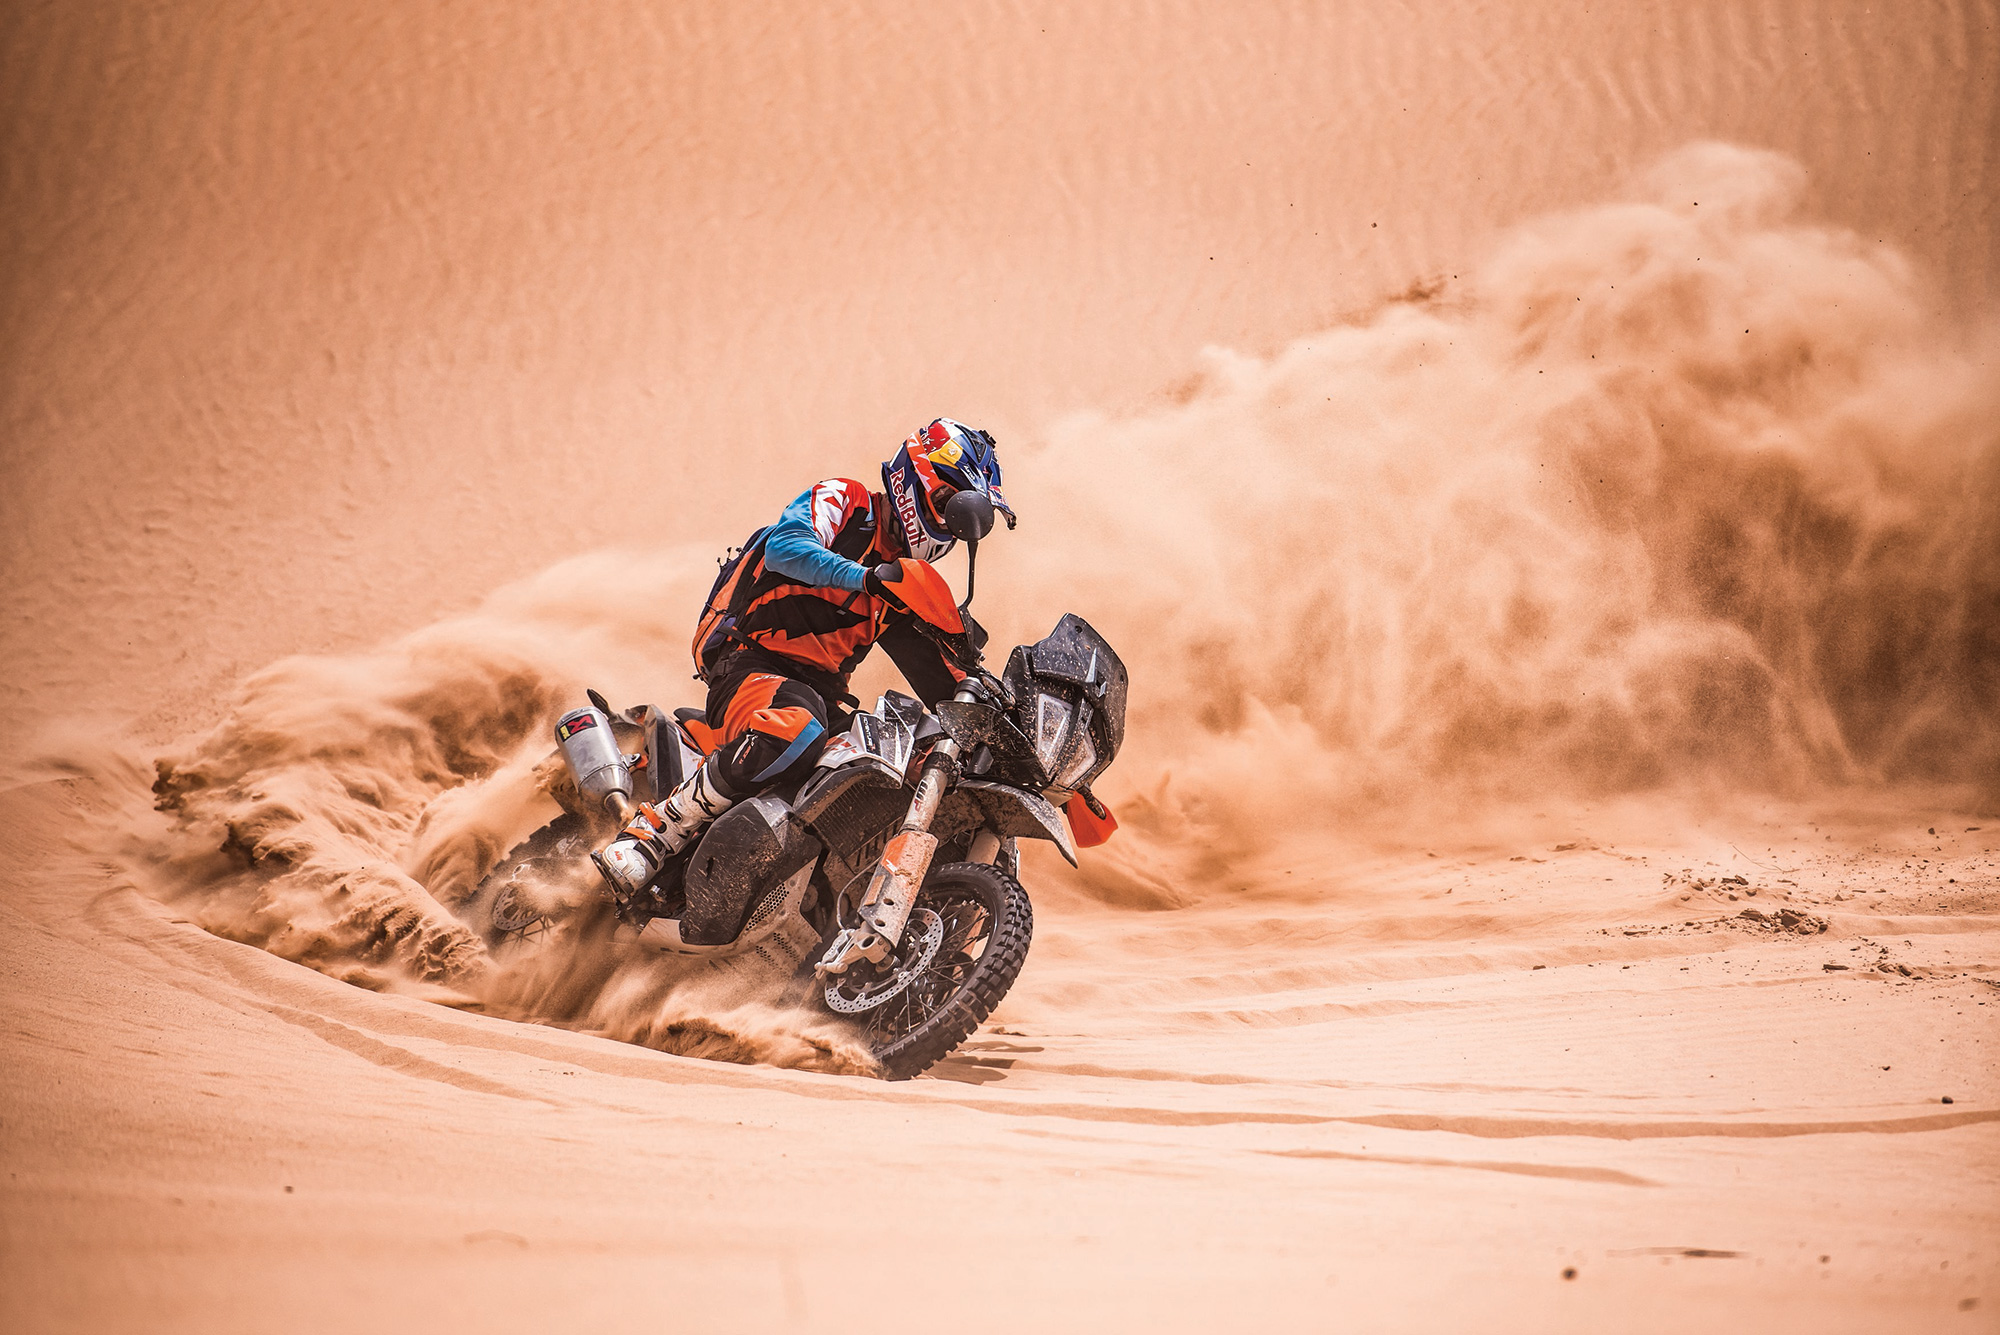 KTM-790-ADVENTURE-R_Action-06-web